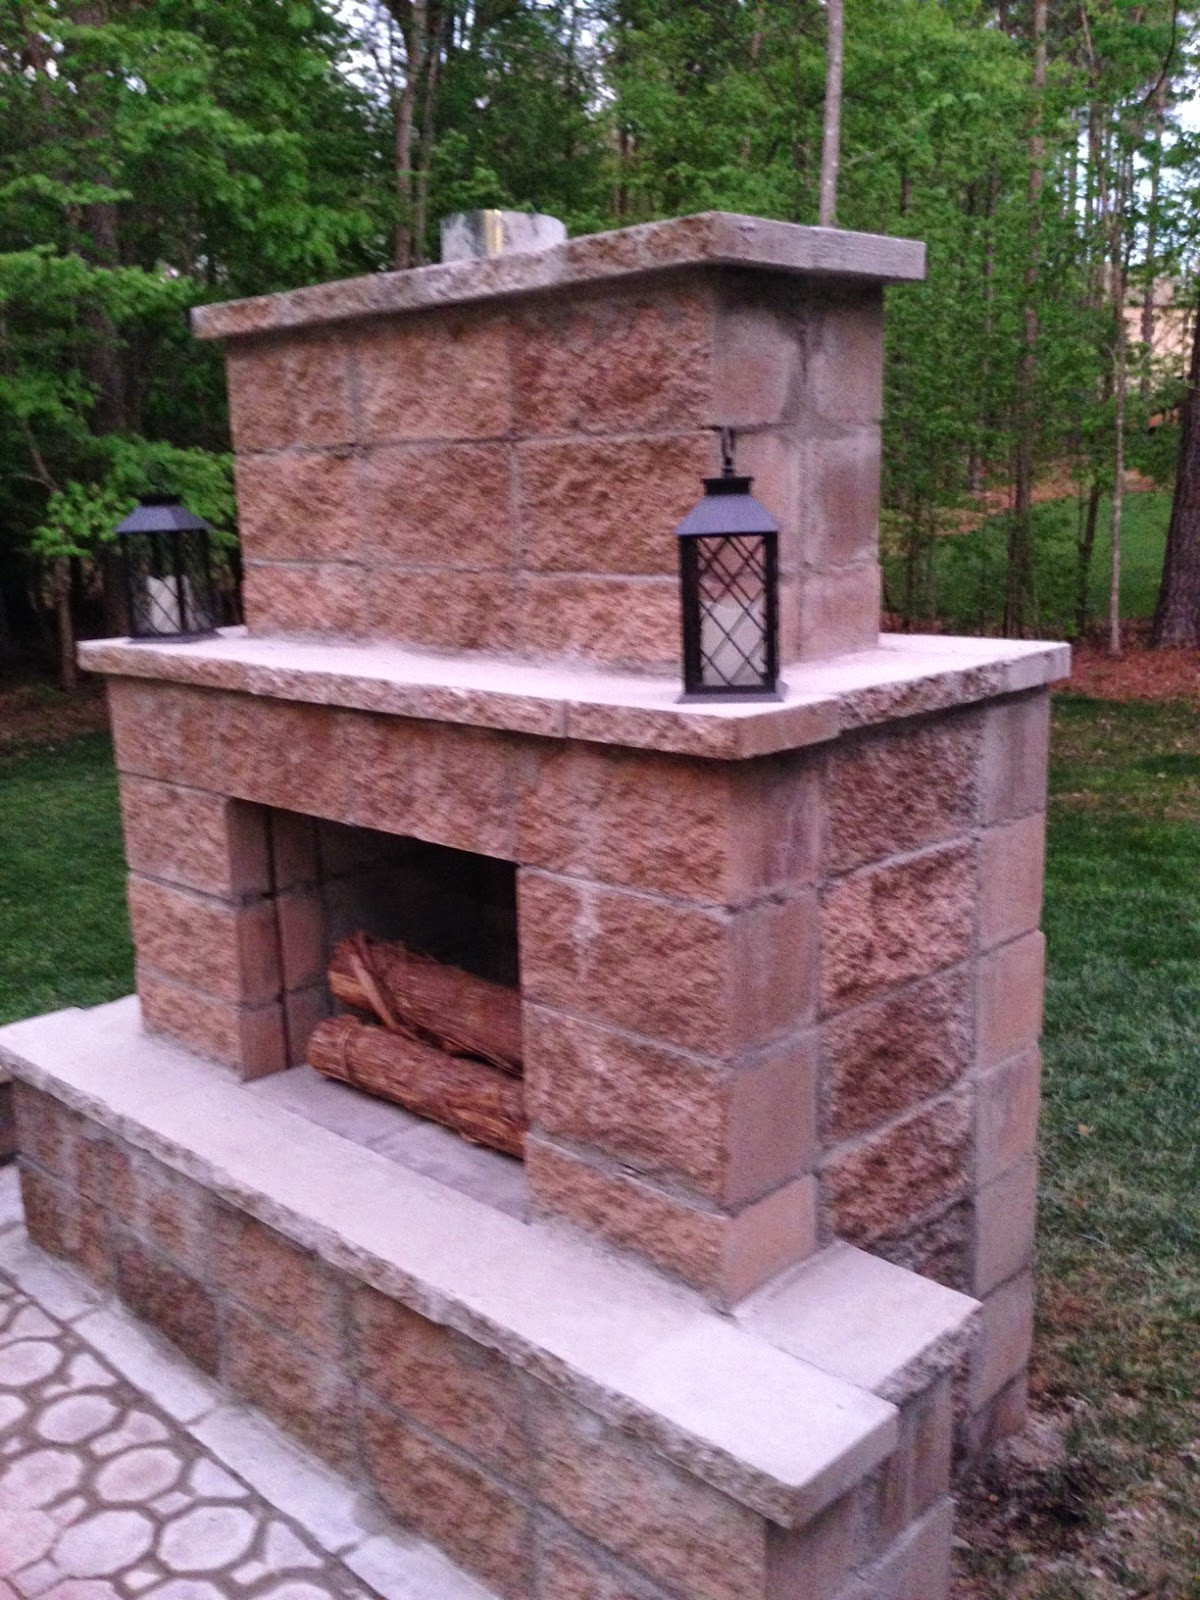 Best ideas about Outdoor Fireplace DIY . Save or Pin Life in the Barbie Dream House DIY Paver Patio and Now.